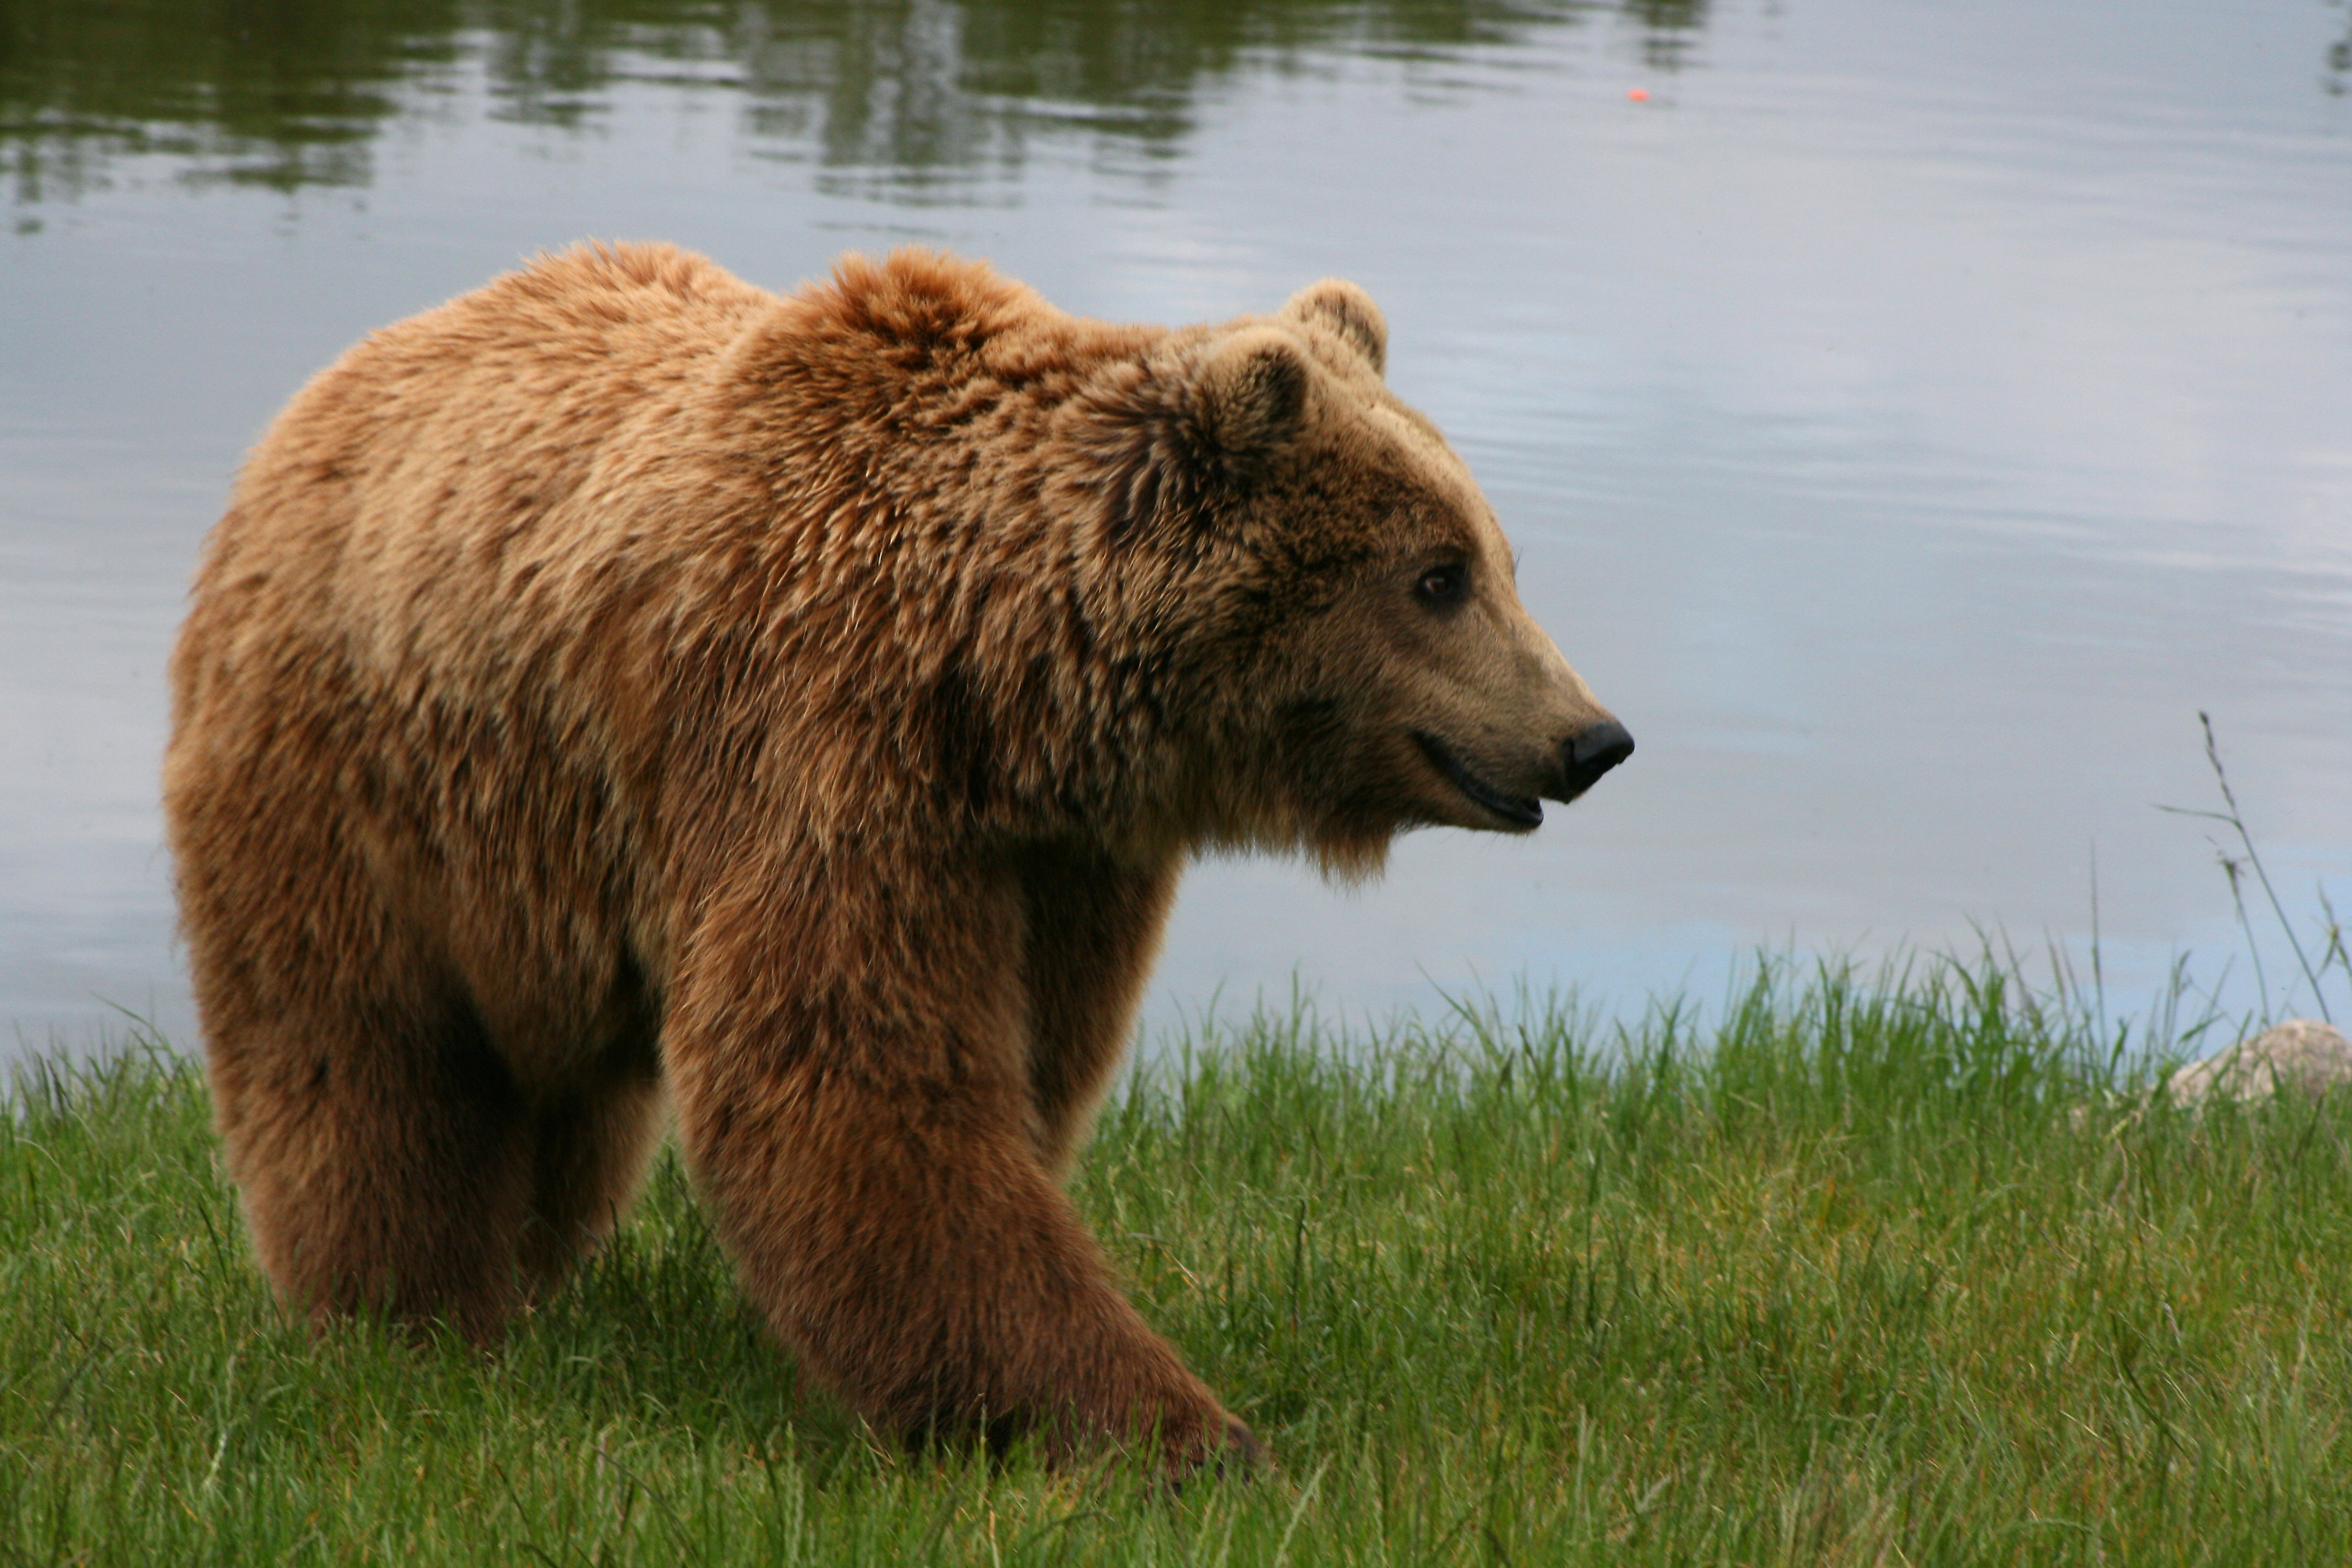 Https Commons Wikimedia Org Wiki File Brown Bear Ursus Arctos Arctos Smiling Jpg